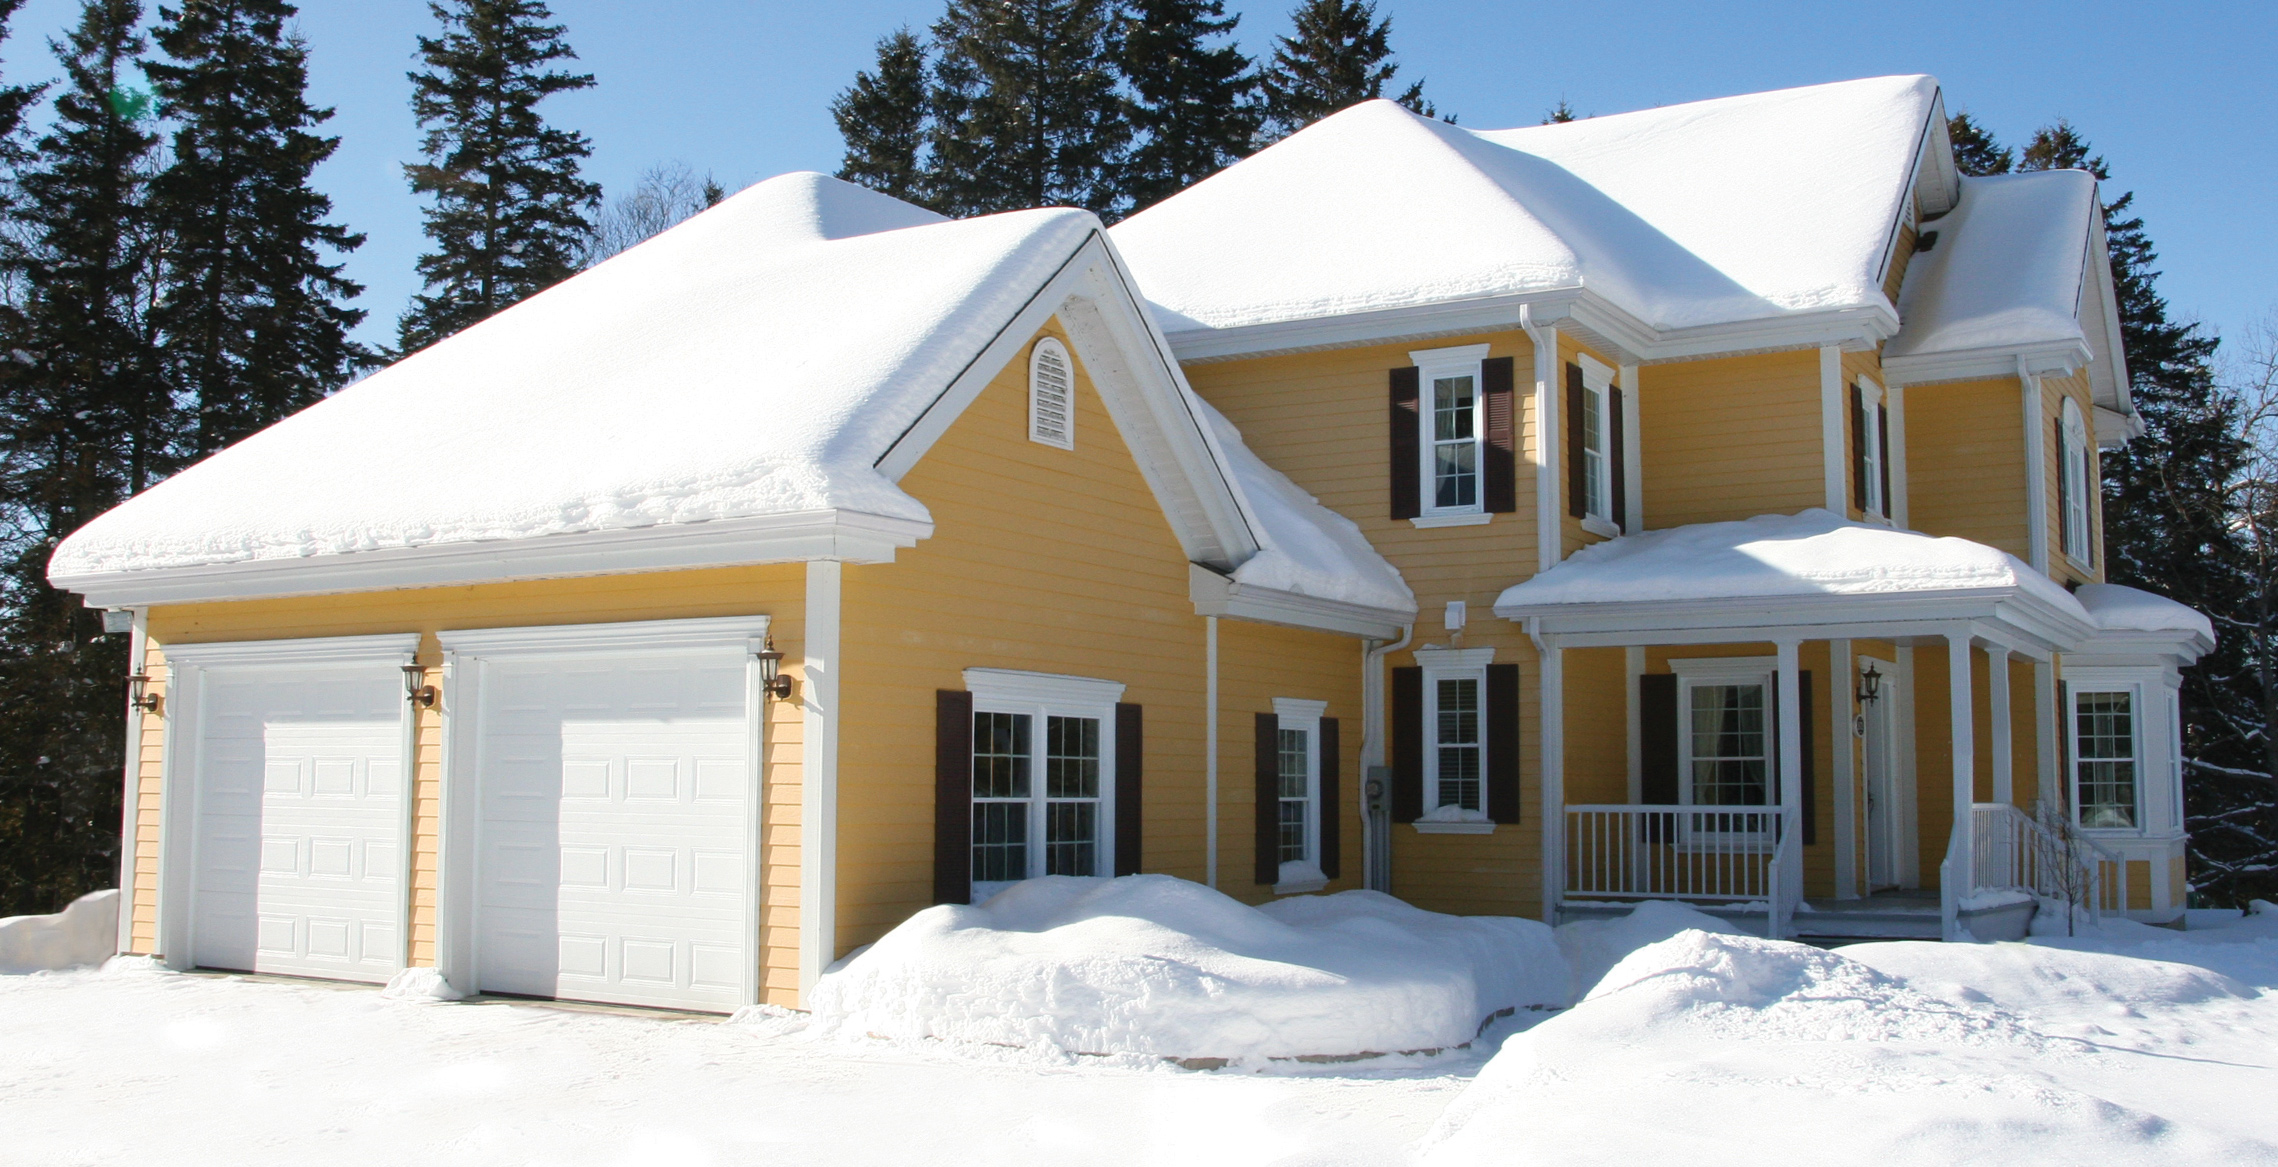 Insulated garage doors, energy efficient, weathertight door